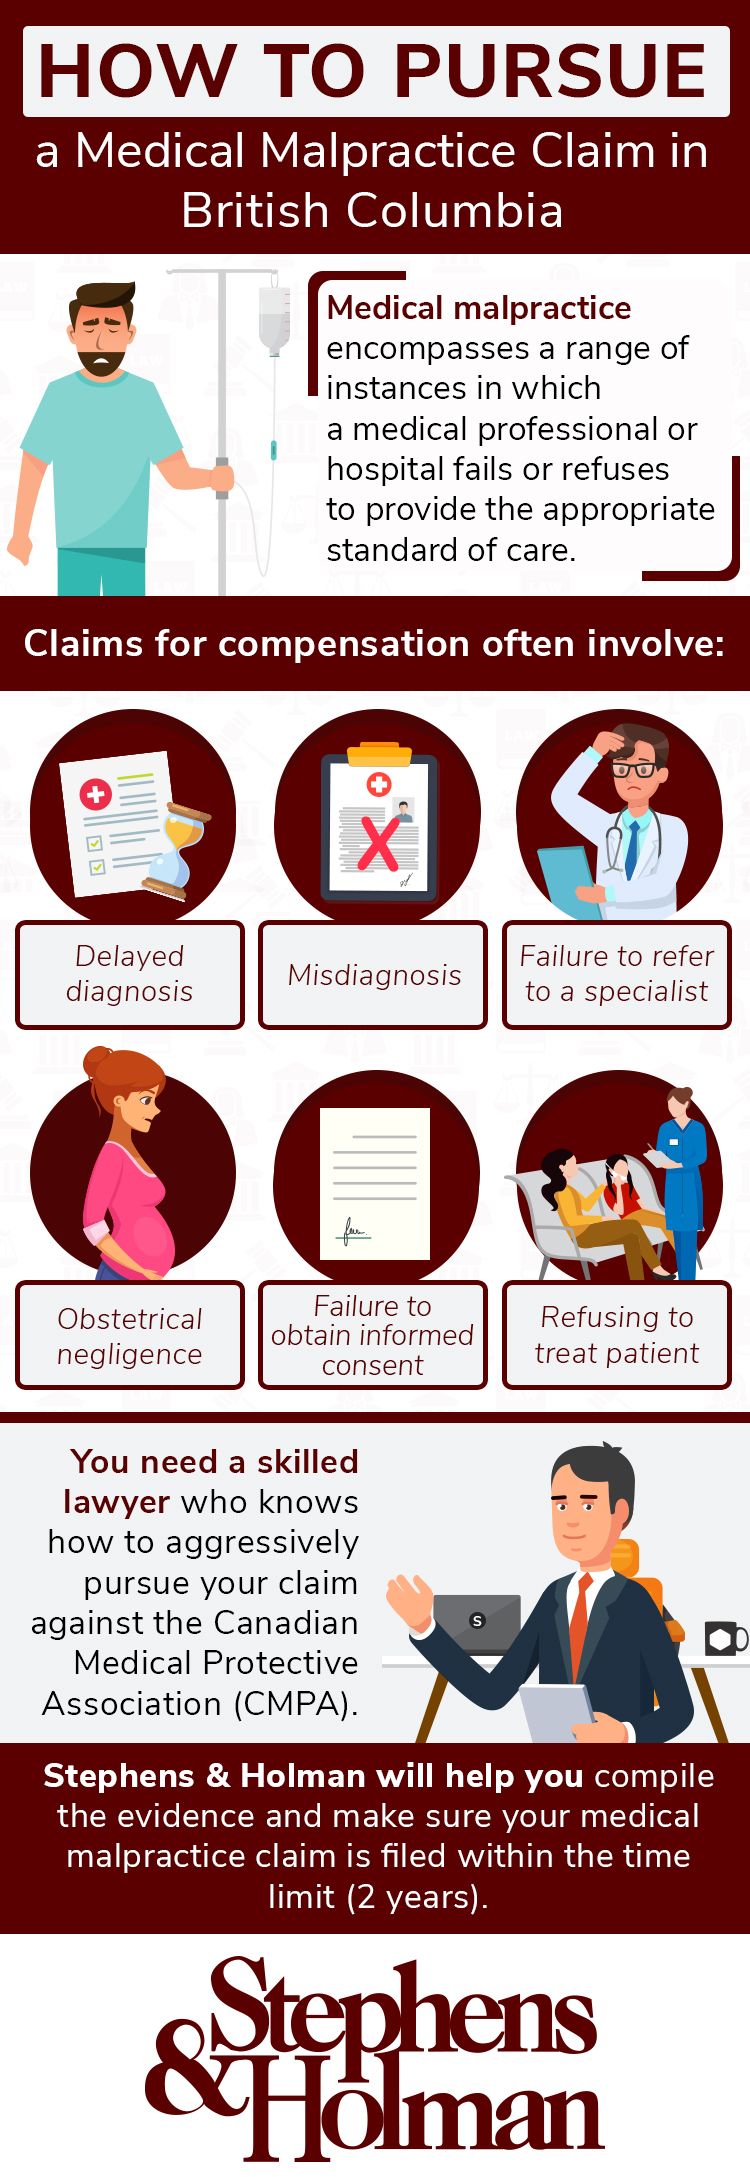 infographic discussing how to pursue a medical malpractice claim in British Columbia